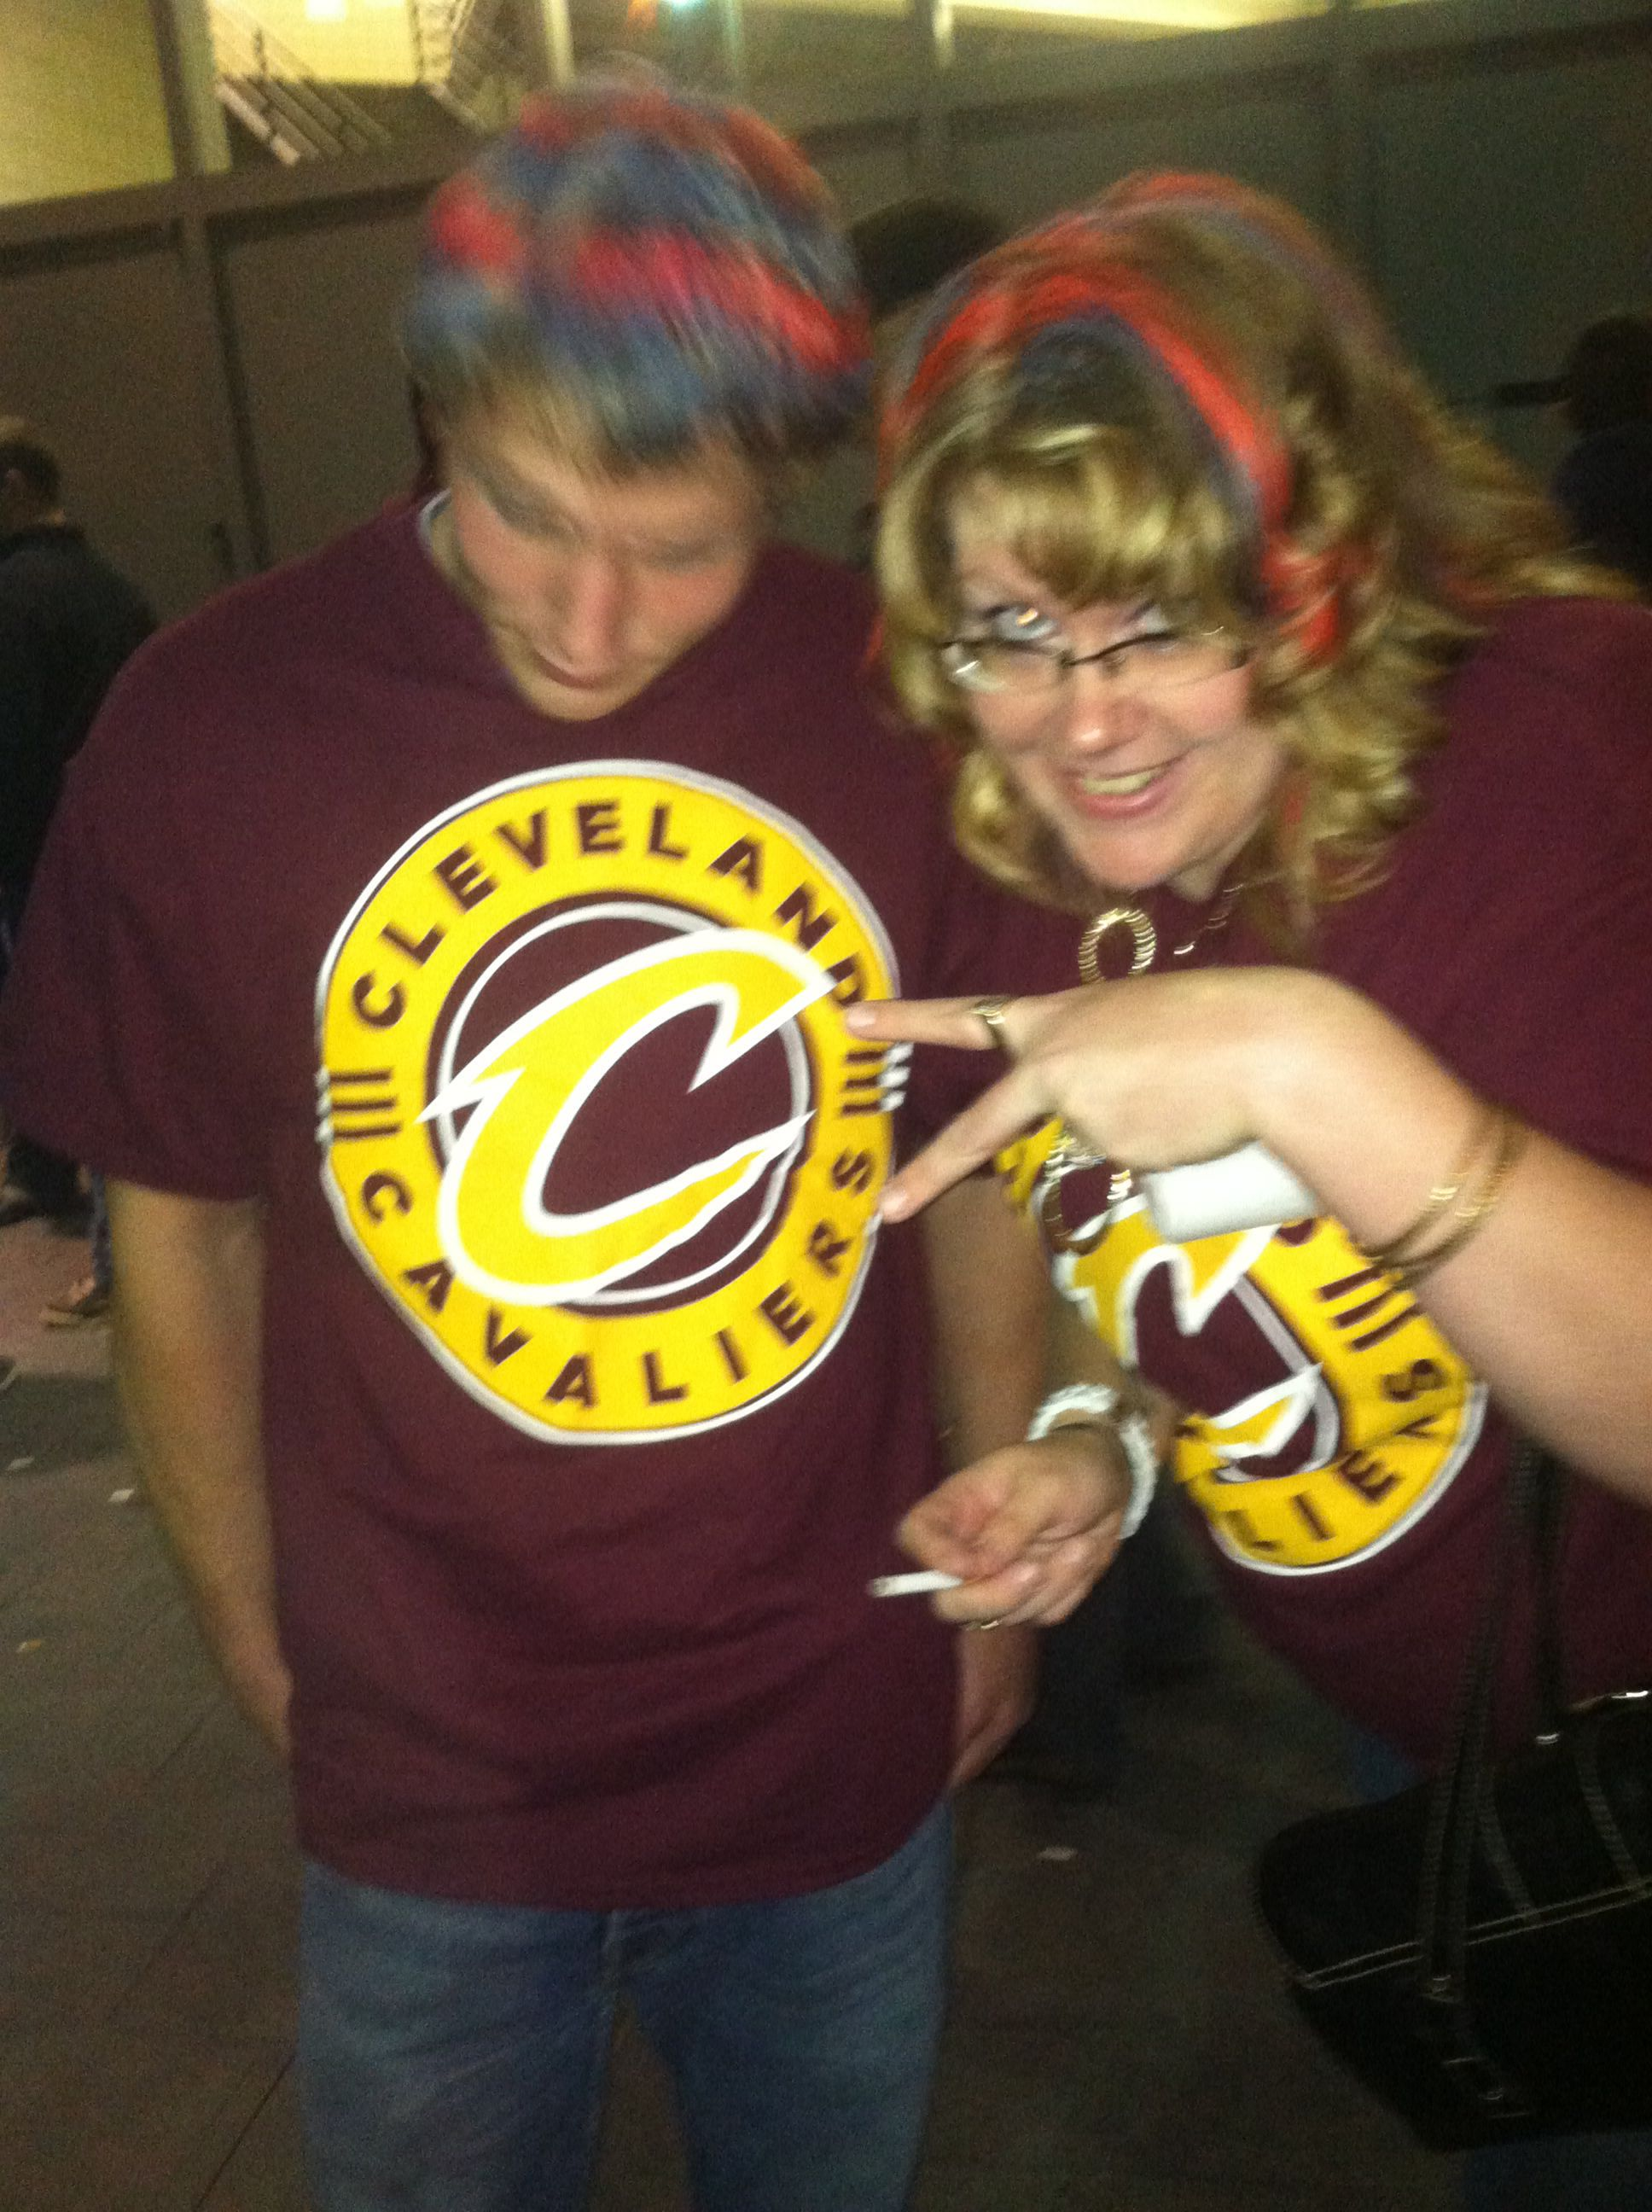 Hair painting at the cavs game